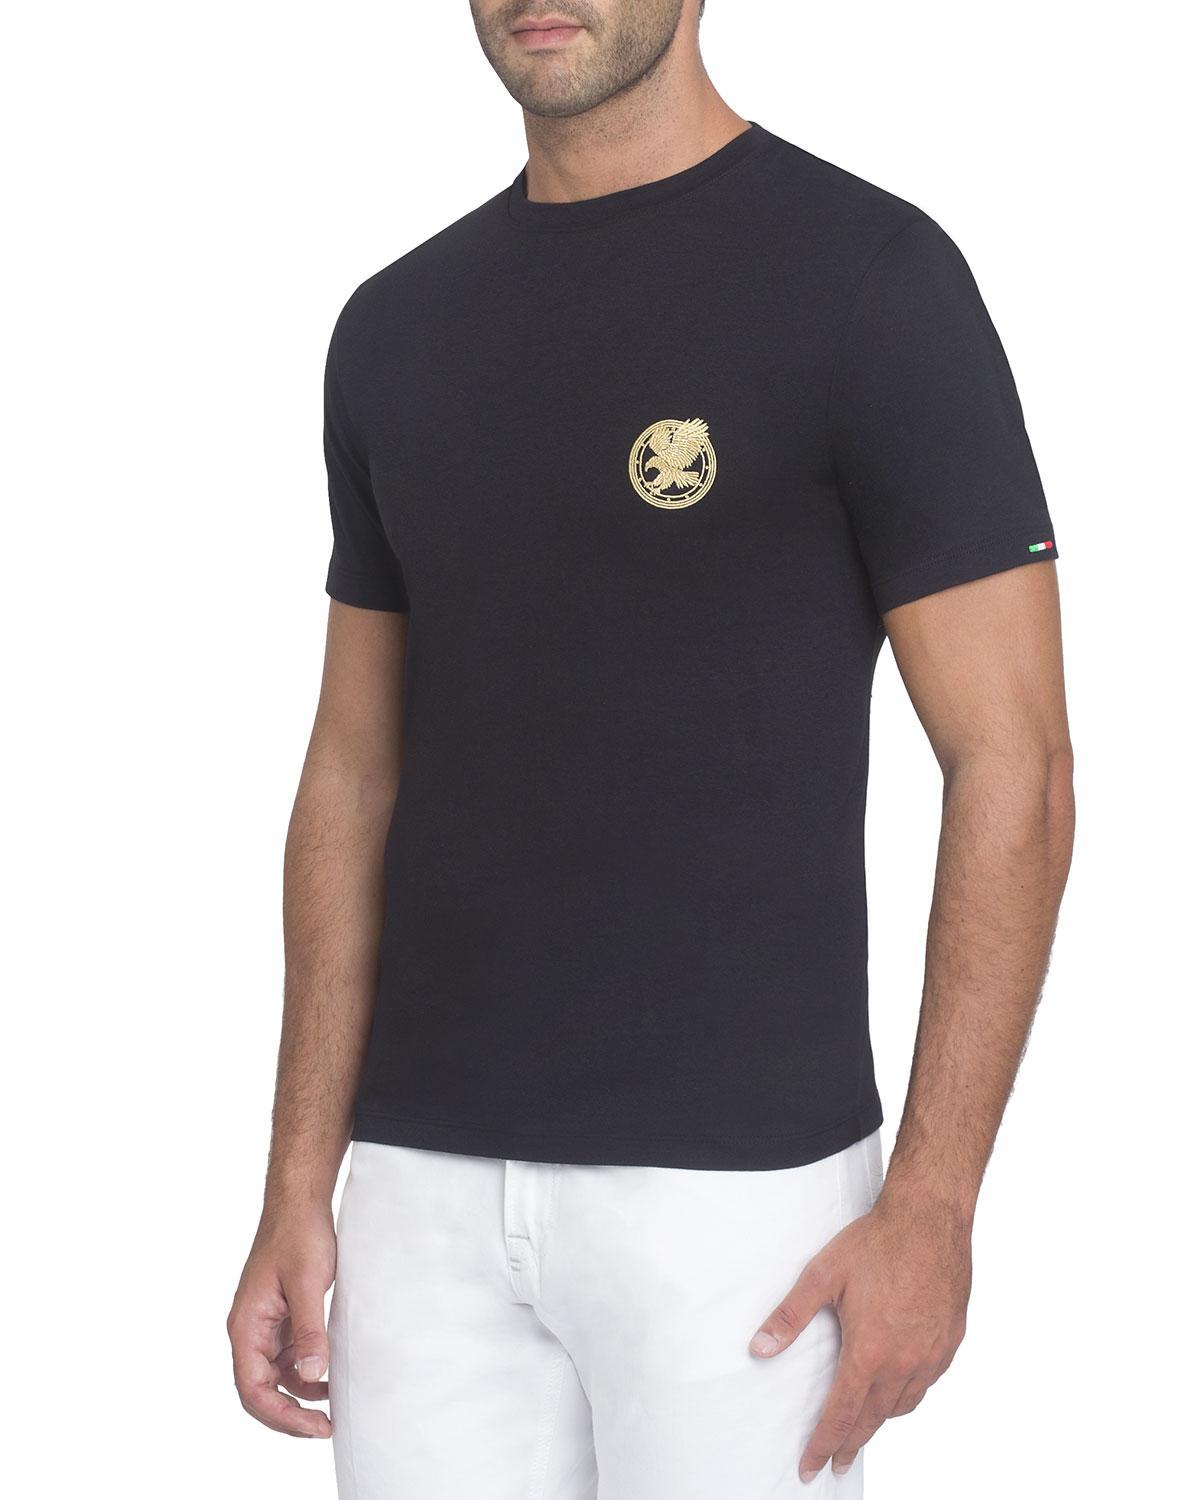 d20dd9c467 Stefano Ricci Embroidered Jersey T-Shirt In Black | ModeSens